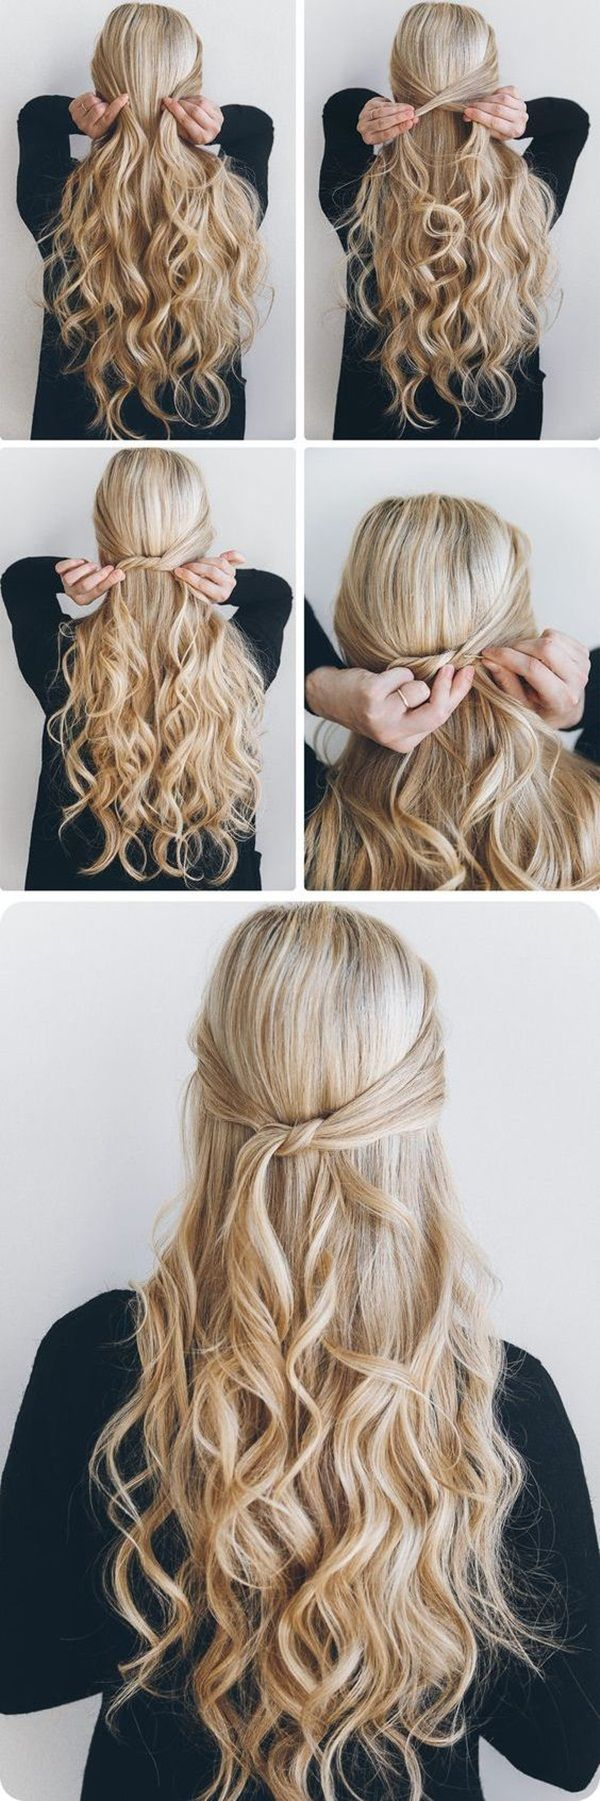 40 Easy Hairstyles for Schools to Try in 2016 | Hair dun ...